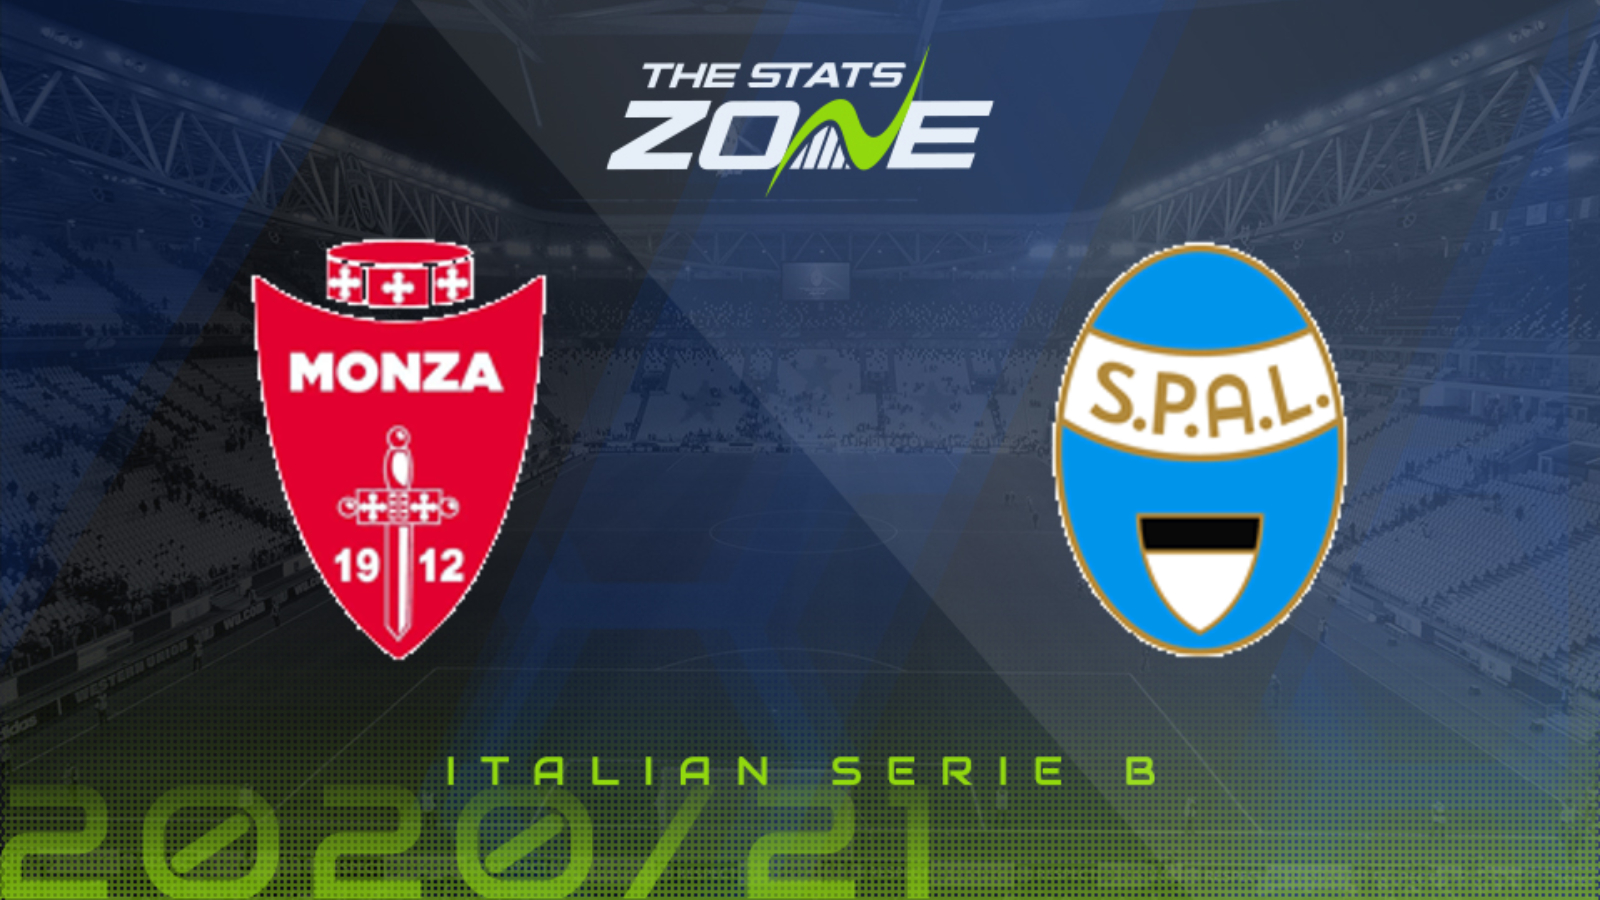 2020-21 Serie B – Monza vs SPAL Preview & Prediction - The Stats Zone